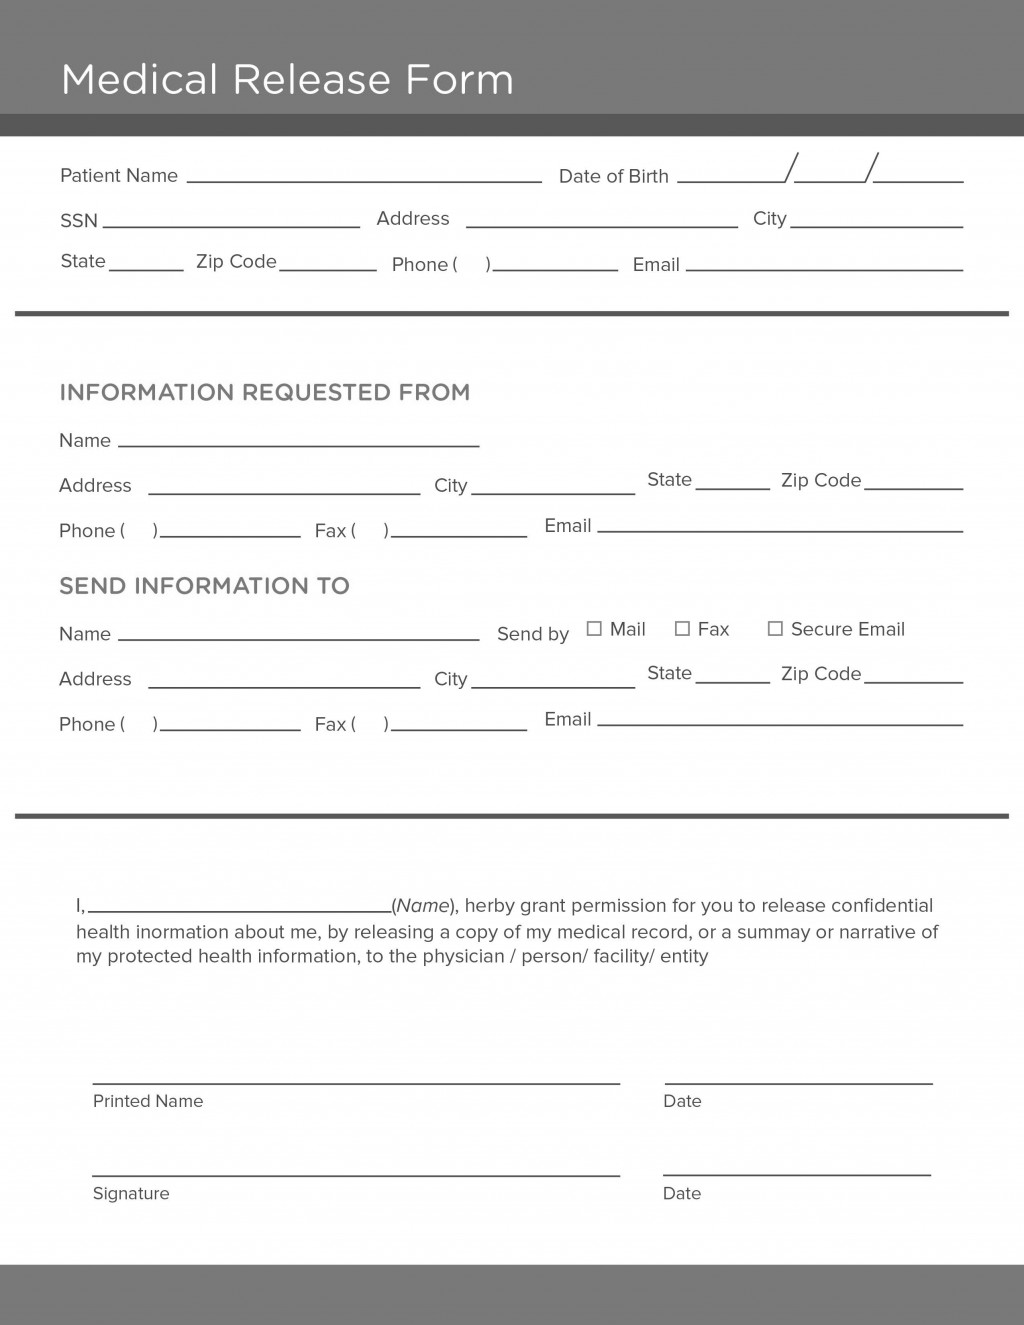 006 Dreaded Medical Record Request Form Template Picture  Free Release AuthorizationLarge